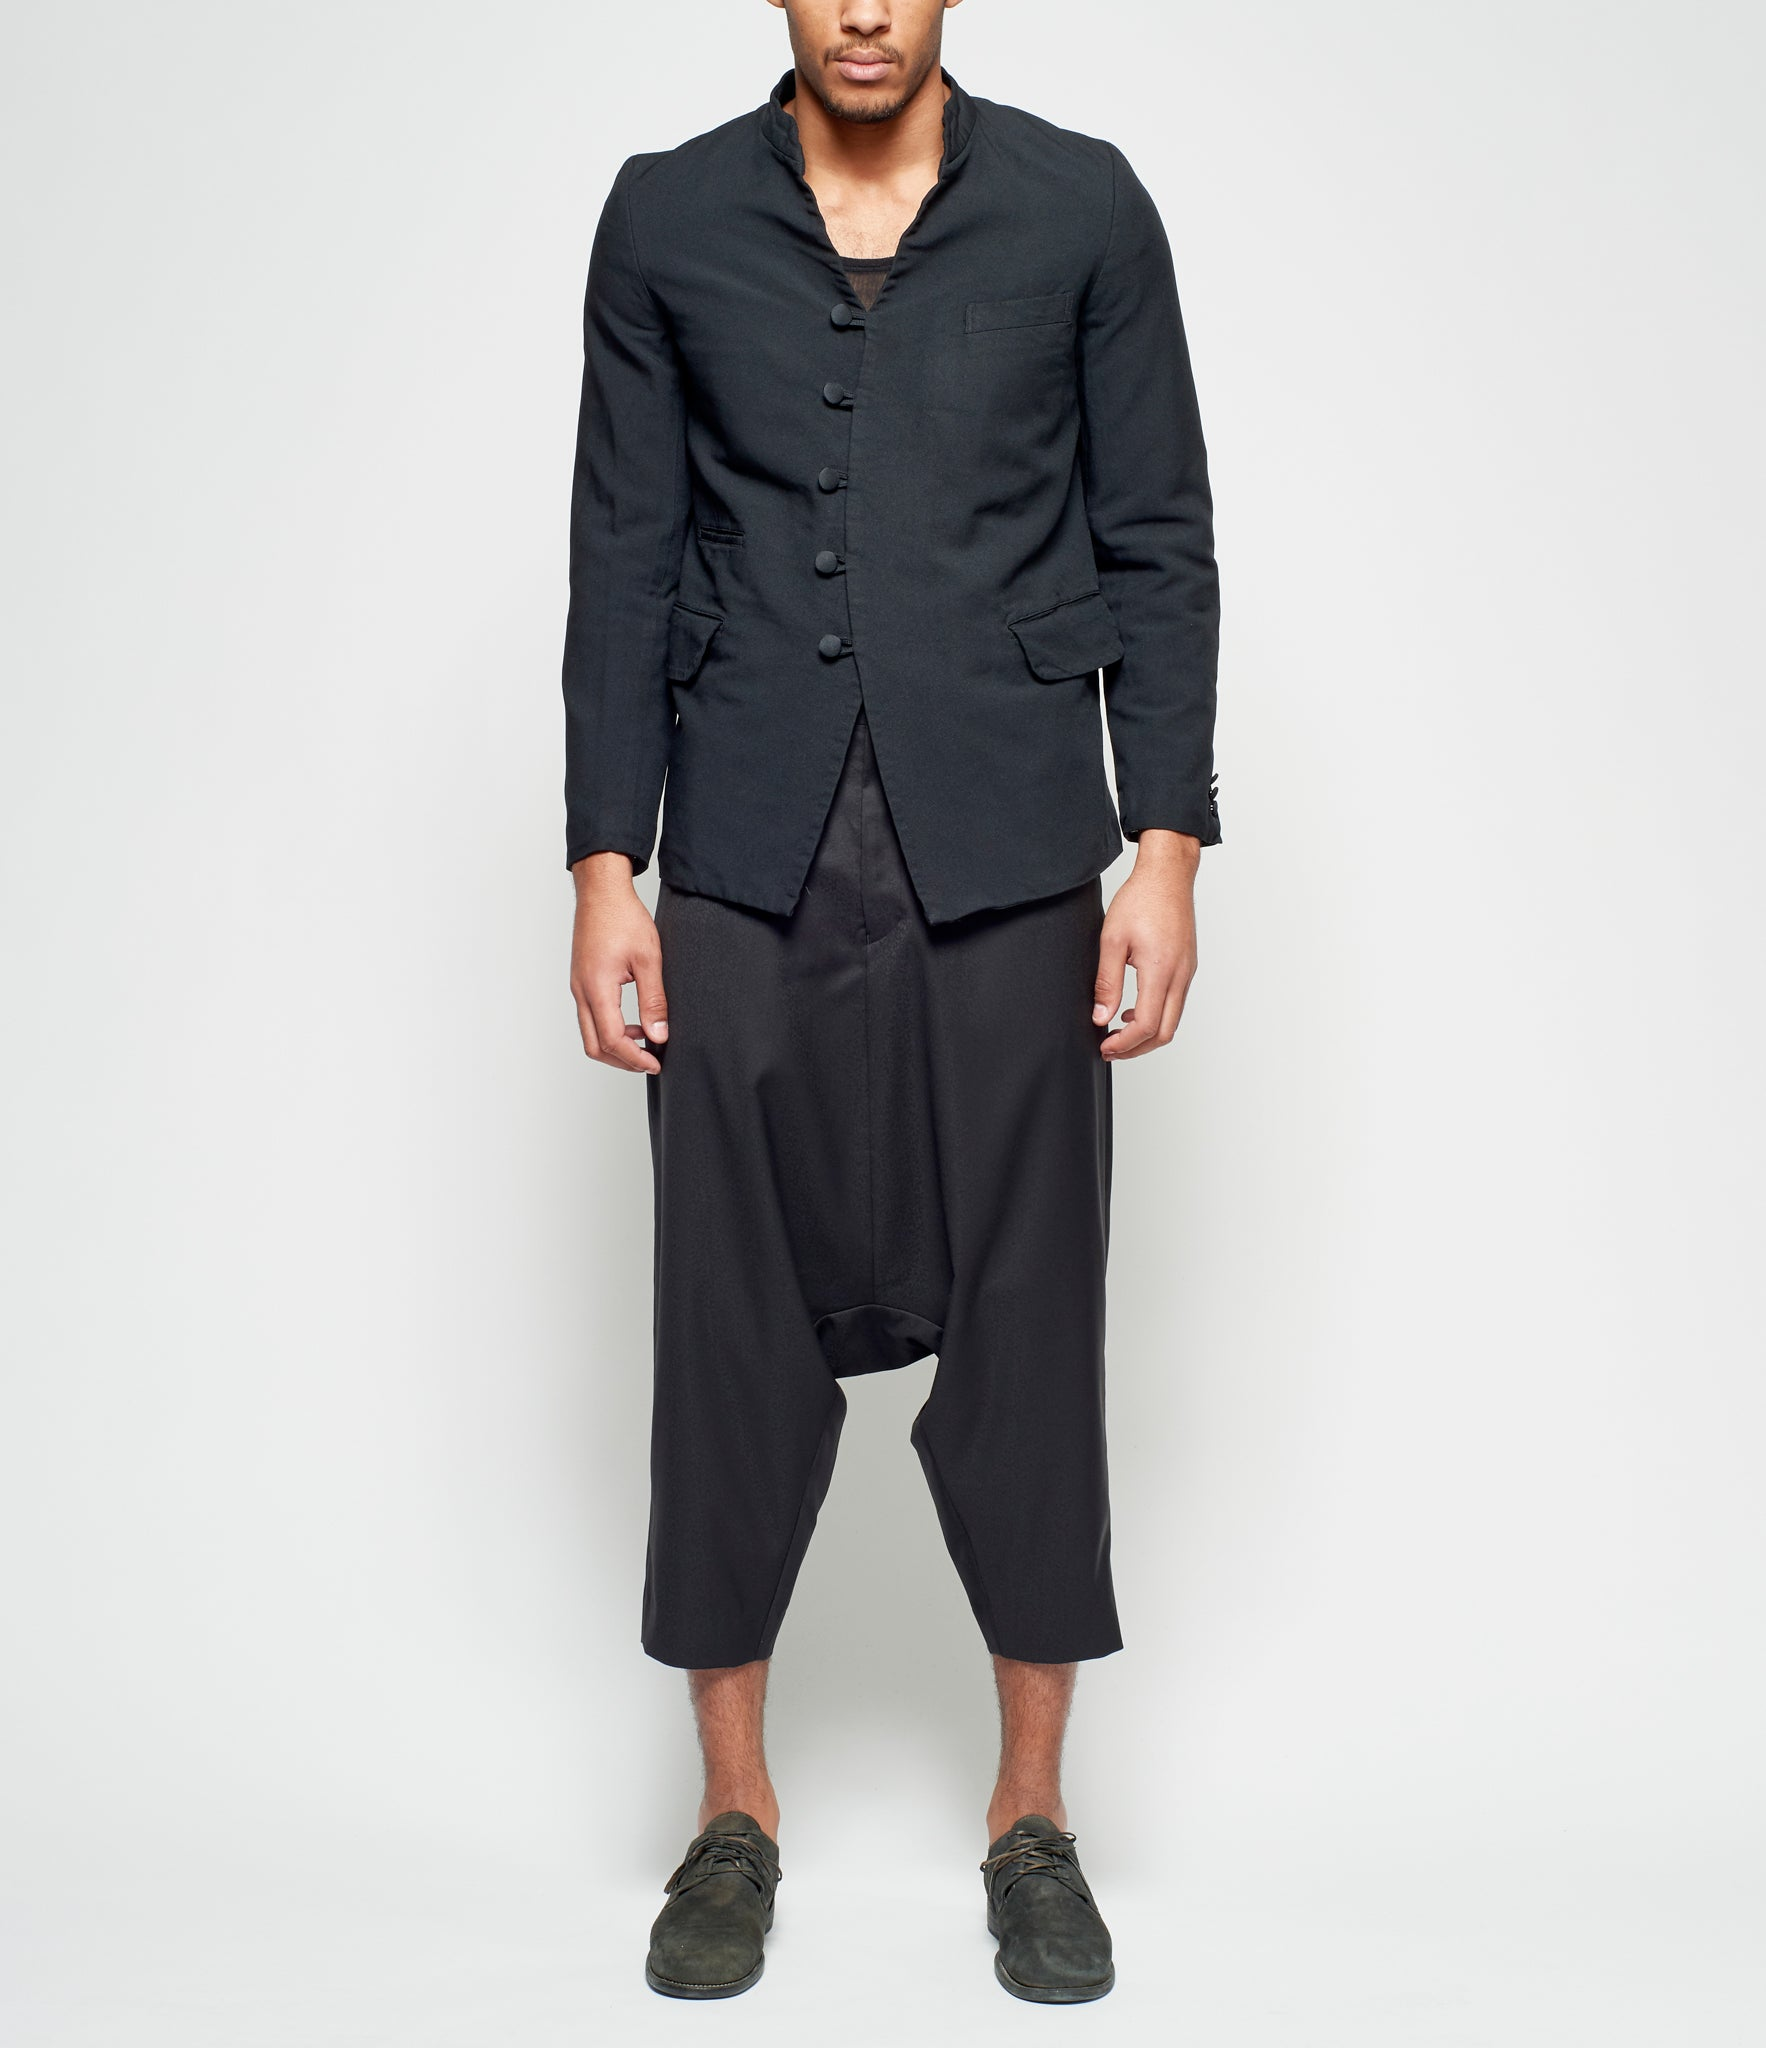 Comme Des Garcons Homme Plus Wool Jacquard Small Flower Patterned Drop Crotch Trousers